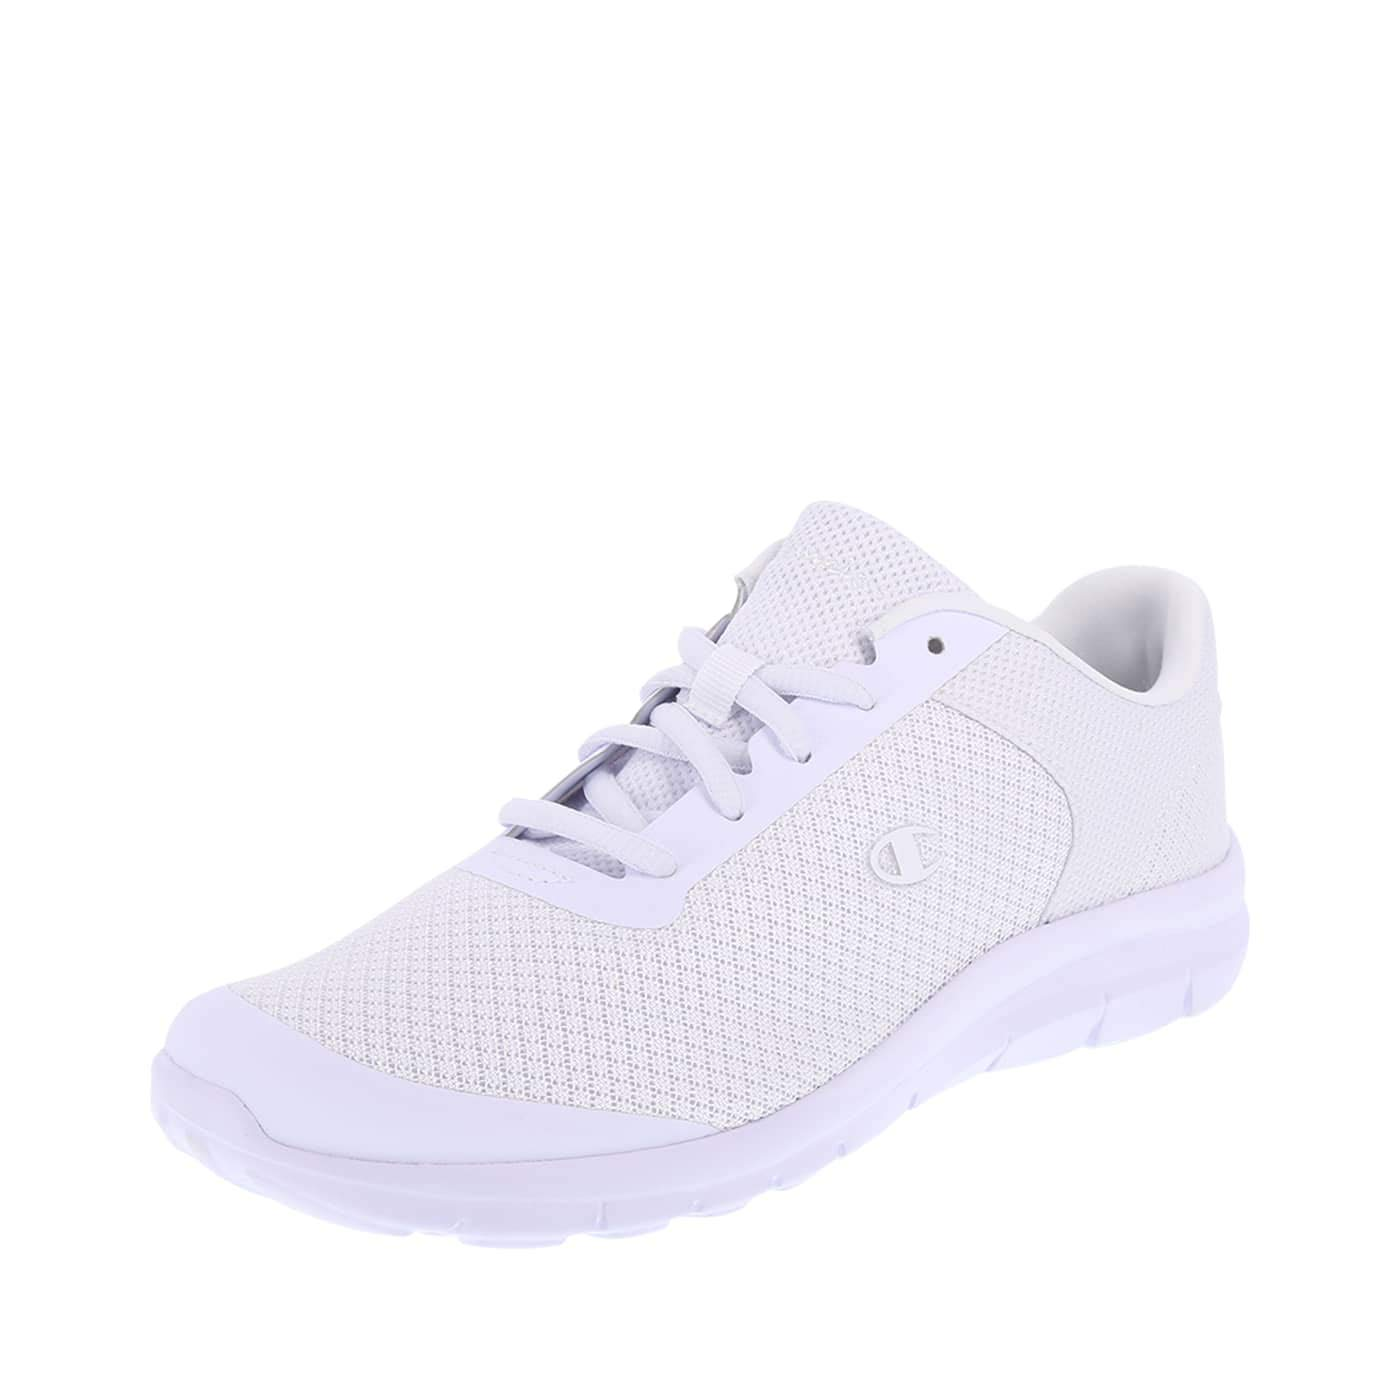 b4052439bba Galleon - Champion Women s White Mesh Performance Gusto Cross Trainer 8  Regular